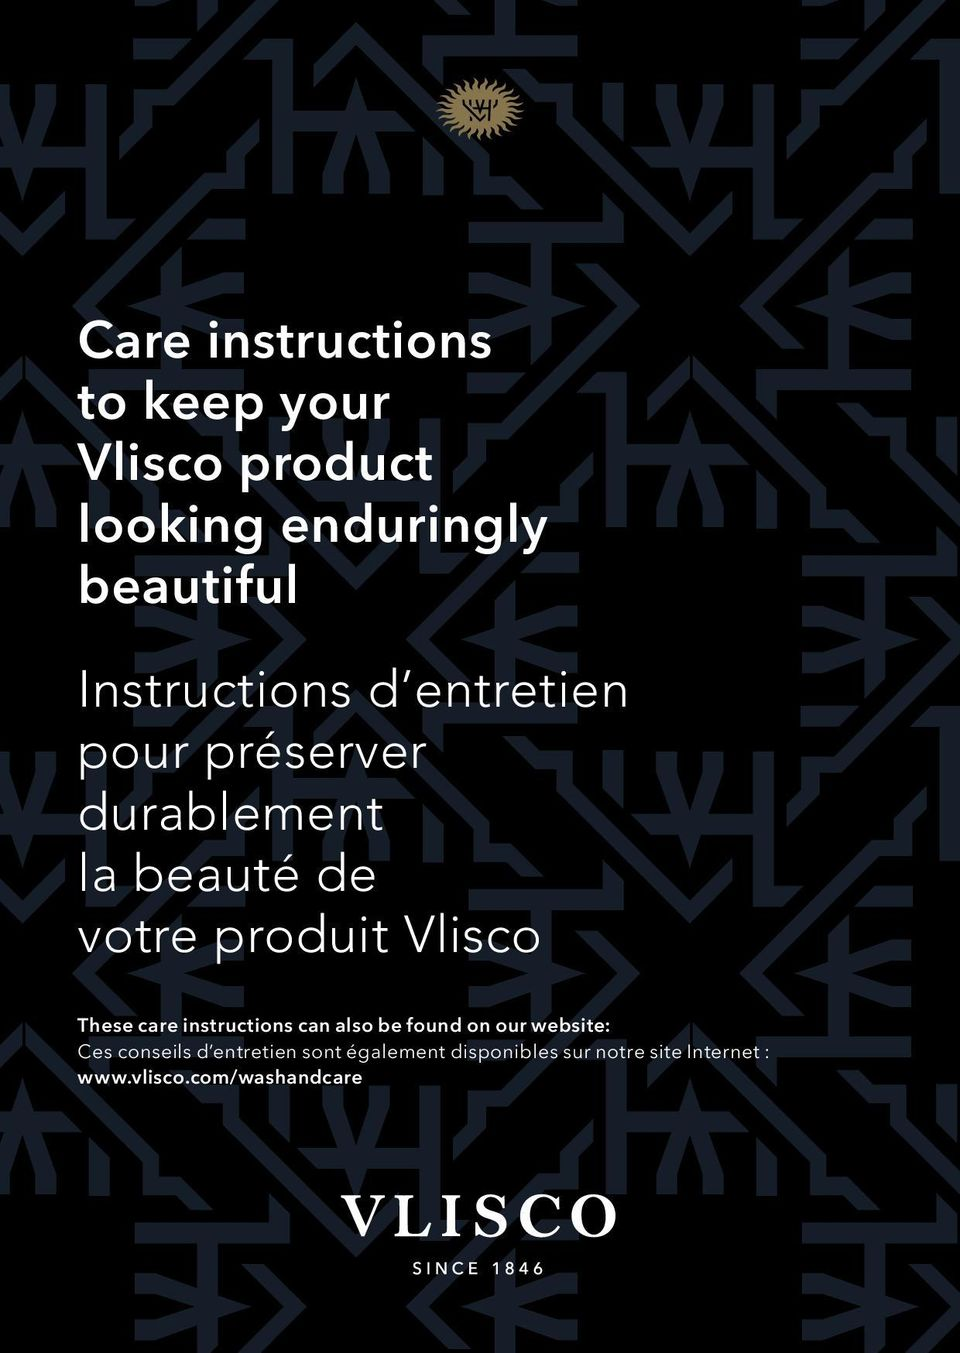 Vlisco These care instructions can also be found on our website: Ces conseils d